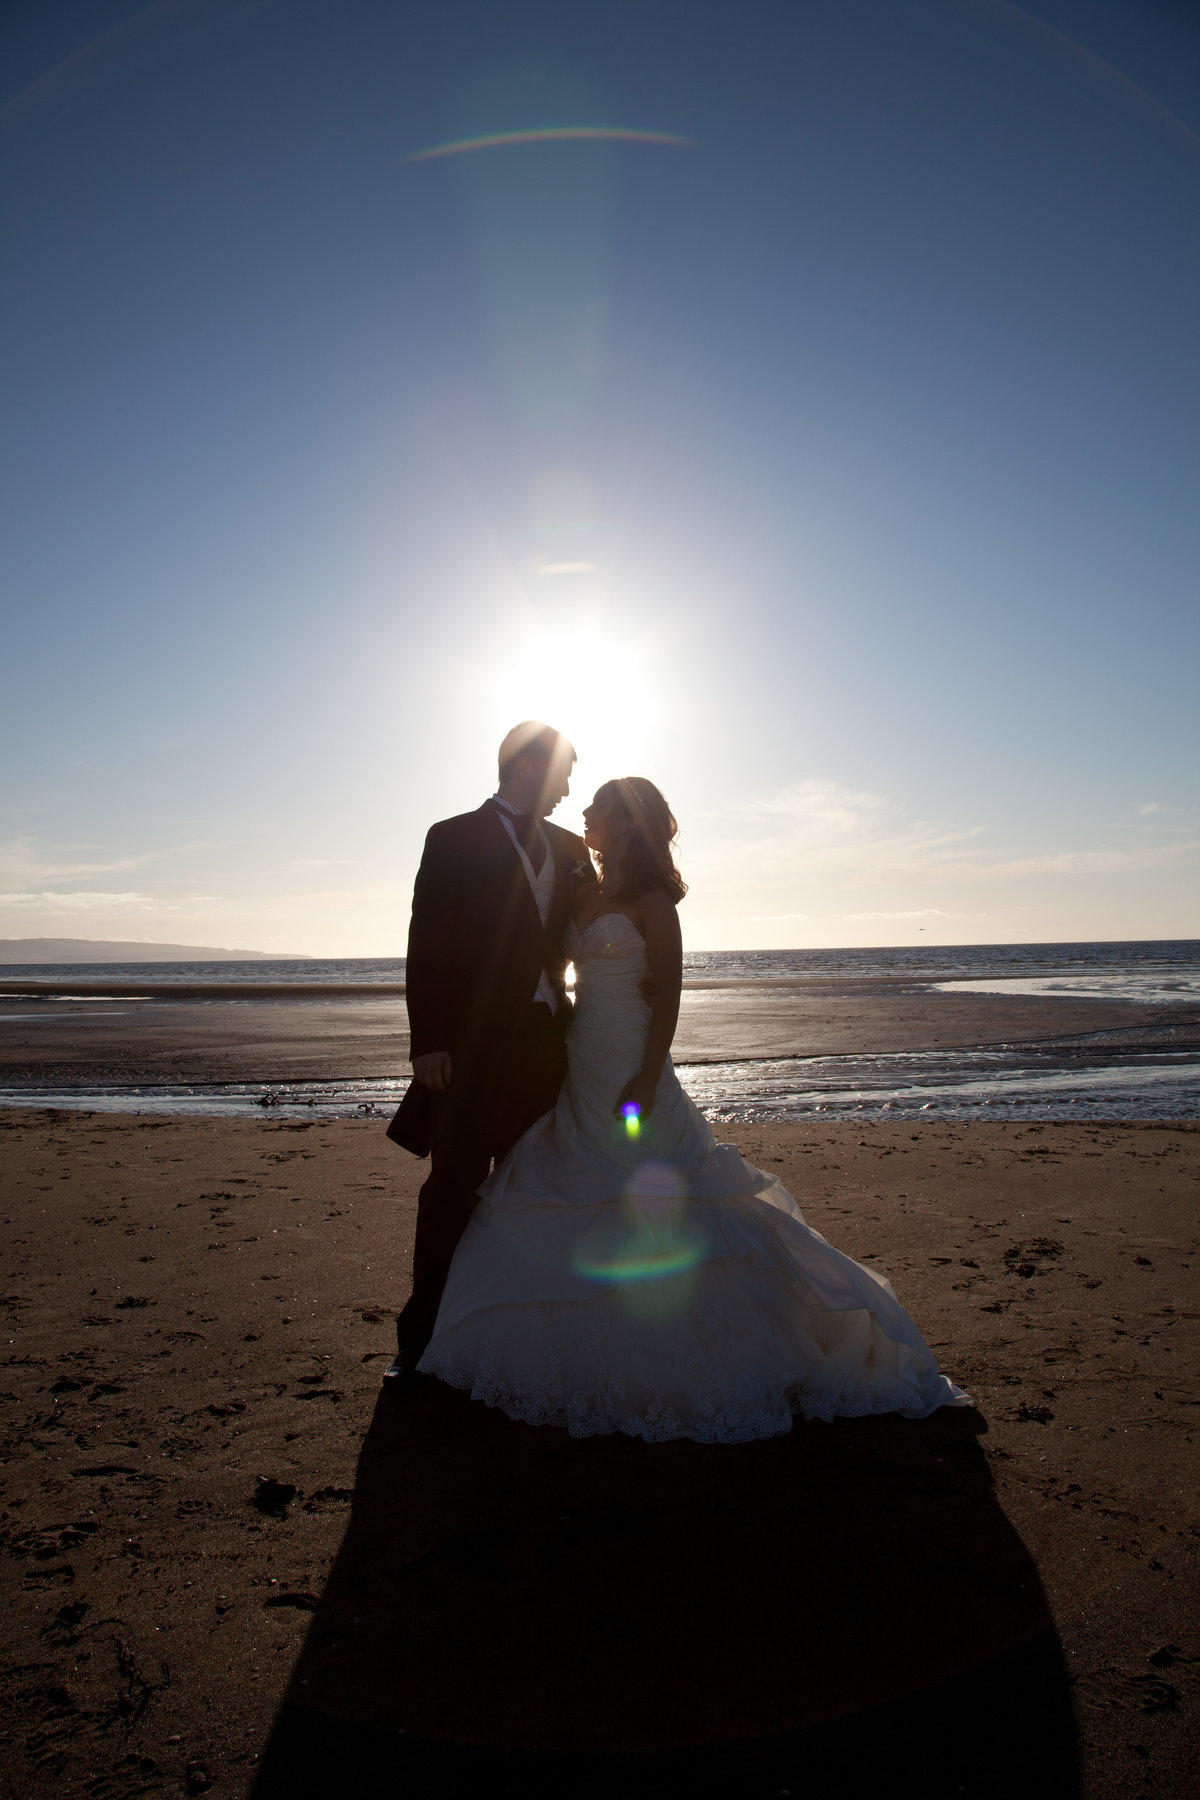 Bride and Groom Silhouette on Troon Beach